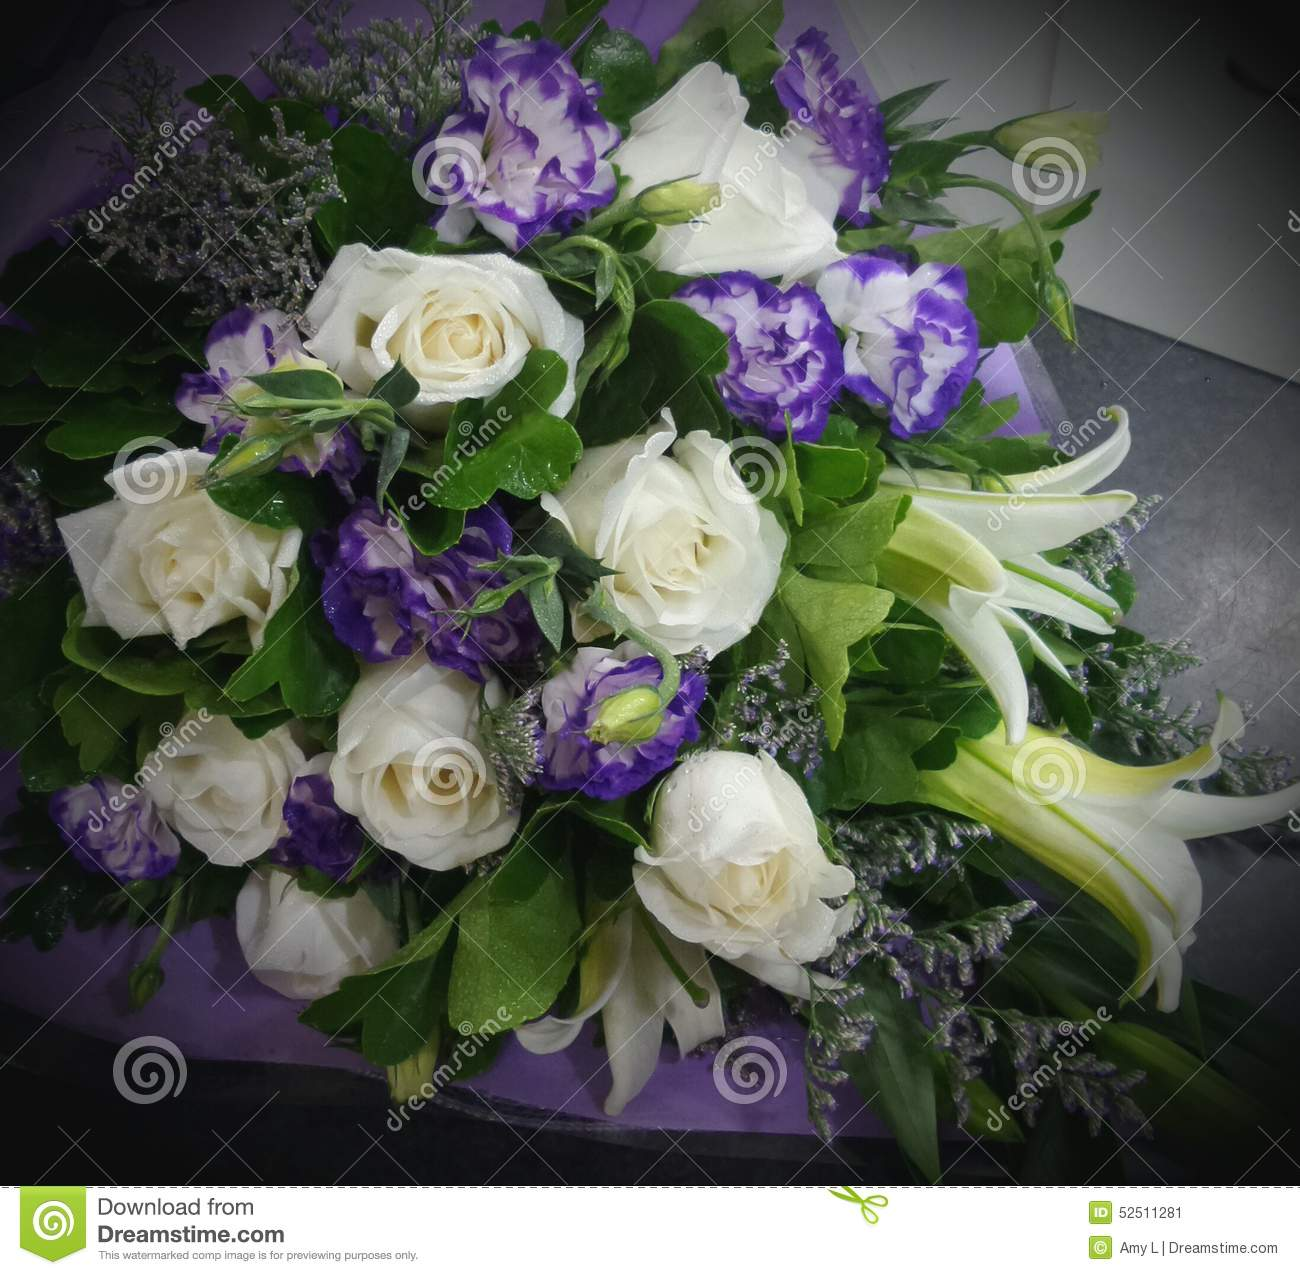 Beautiful flowers bouquet rose stock image image of bouquet download beautiful flowers bouquet rose stock image image of bouquet purple 52511281 izmirmasajfo